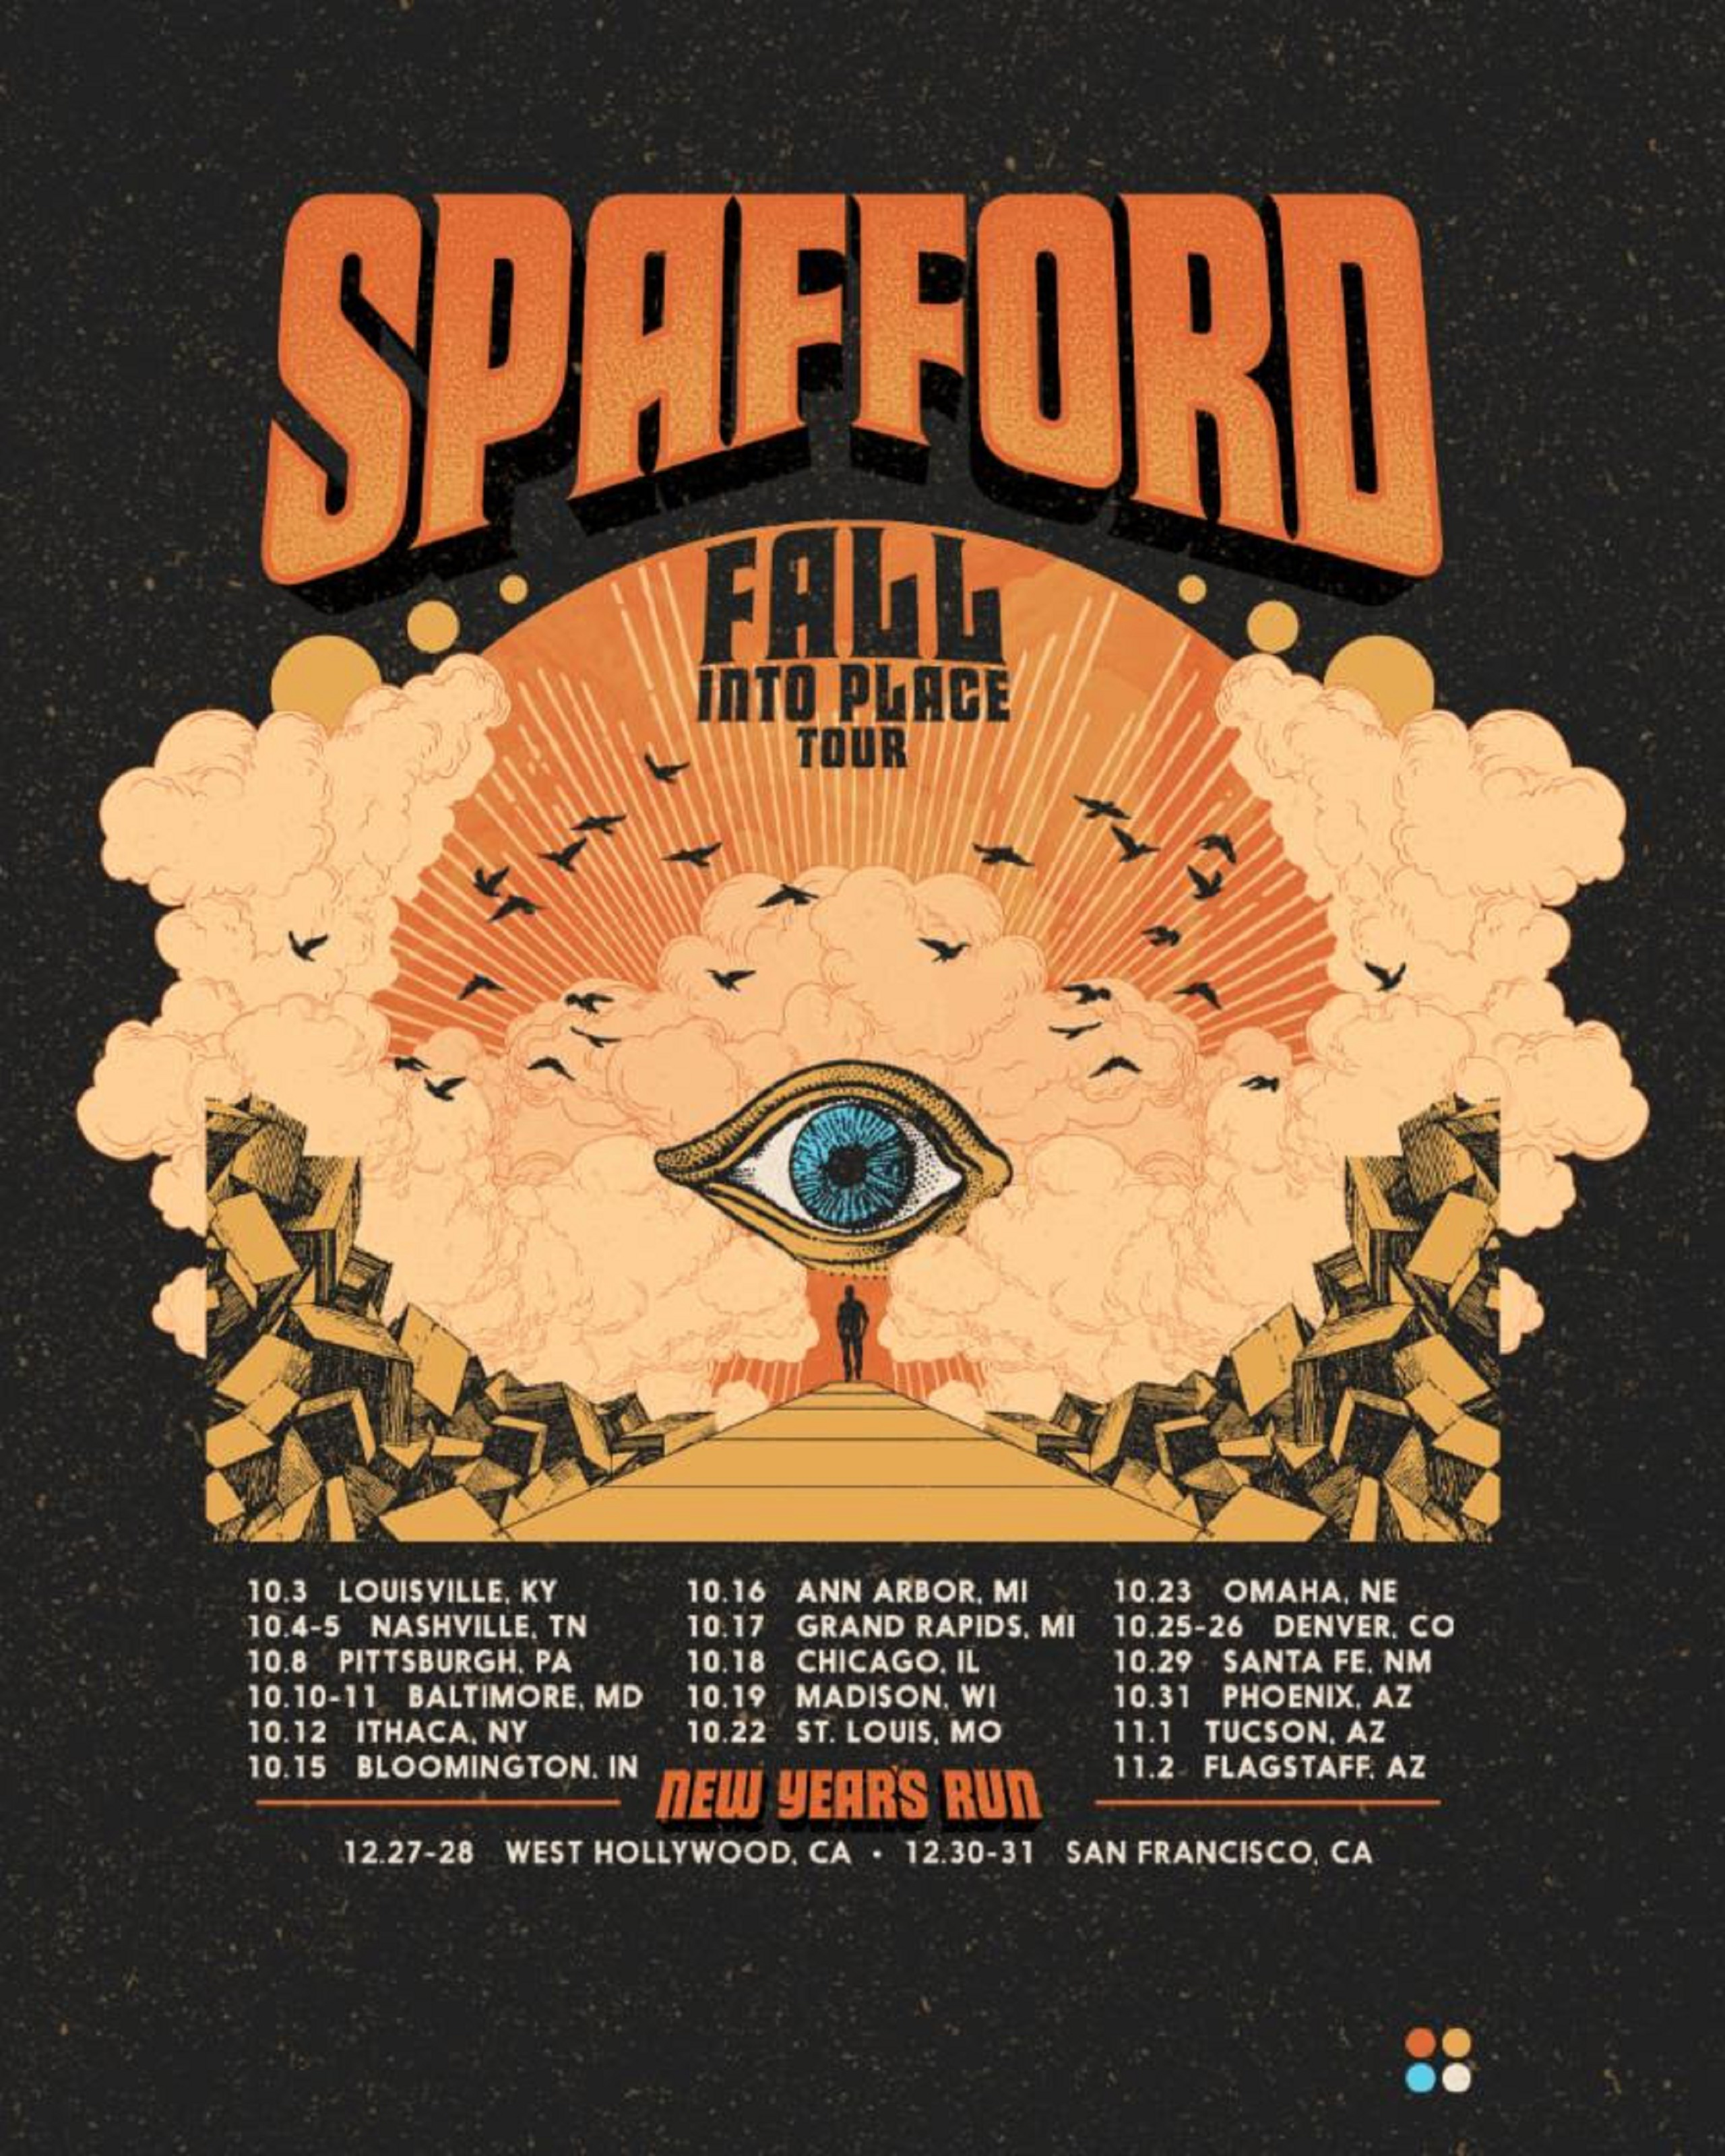 Spafford fall tour 2019